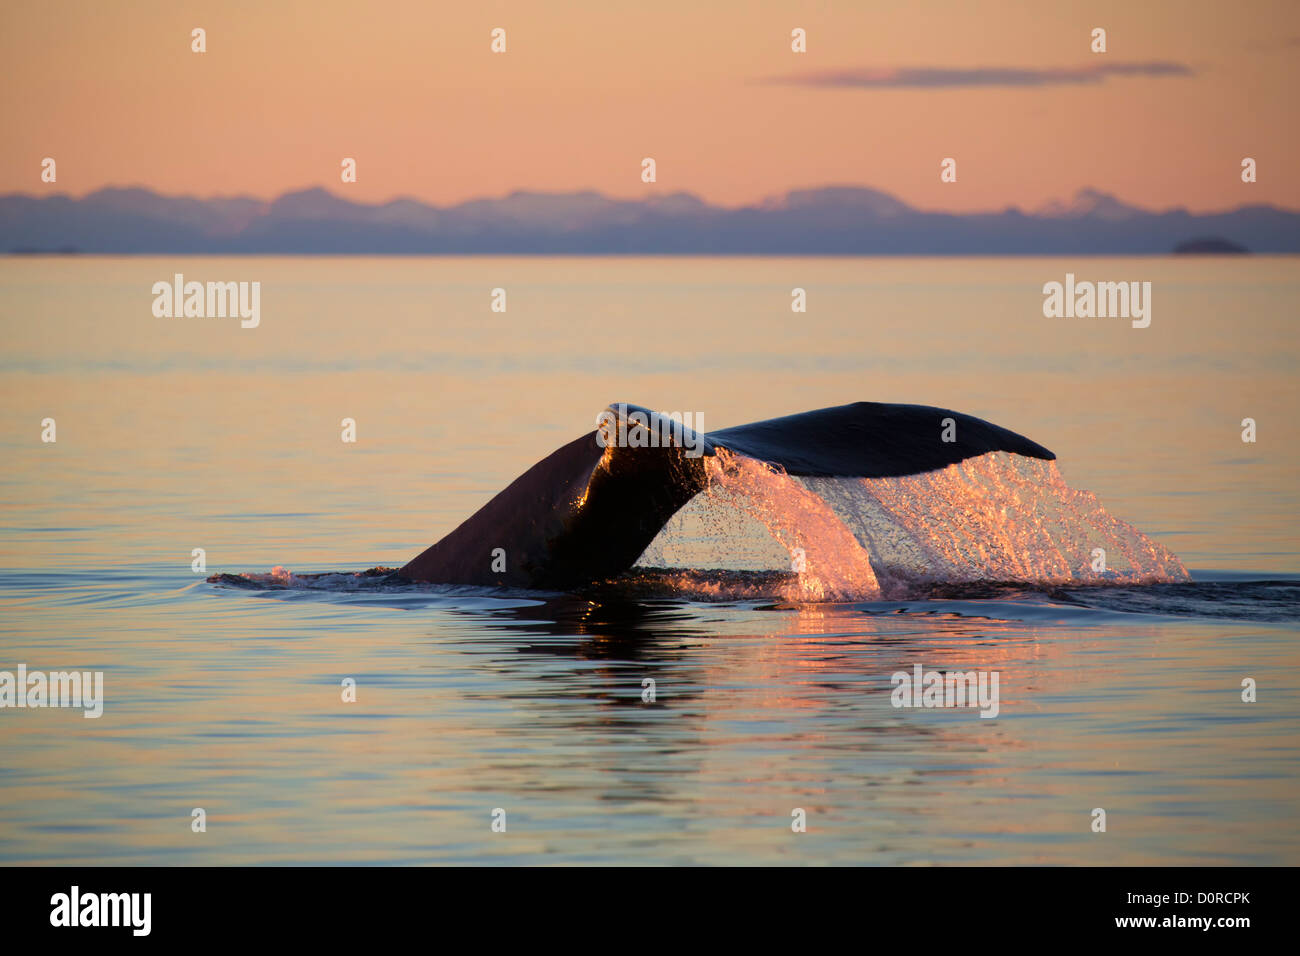 Humpback whale at sunset, Tongass National Forest, Alaska. - Stock Image